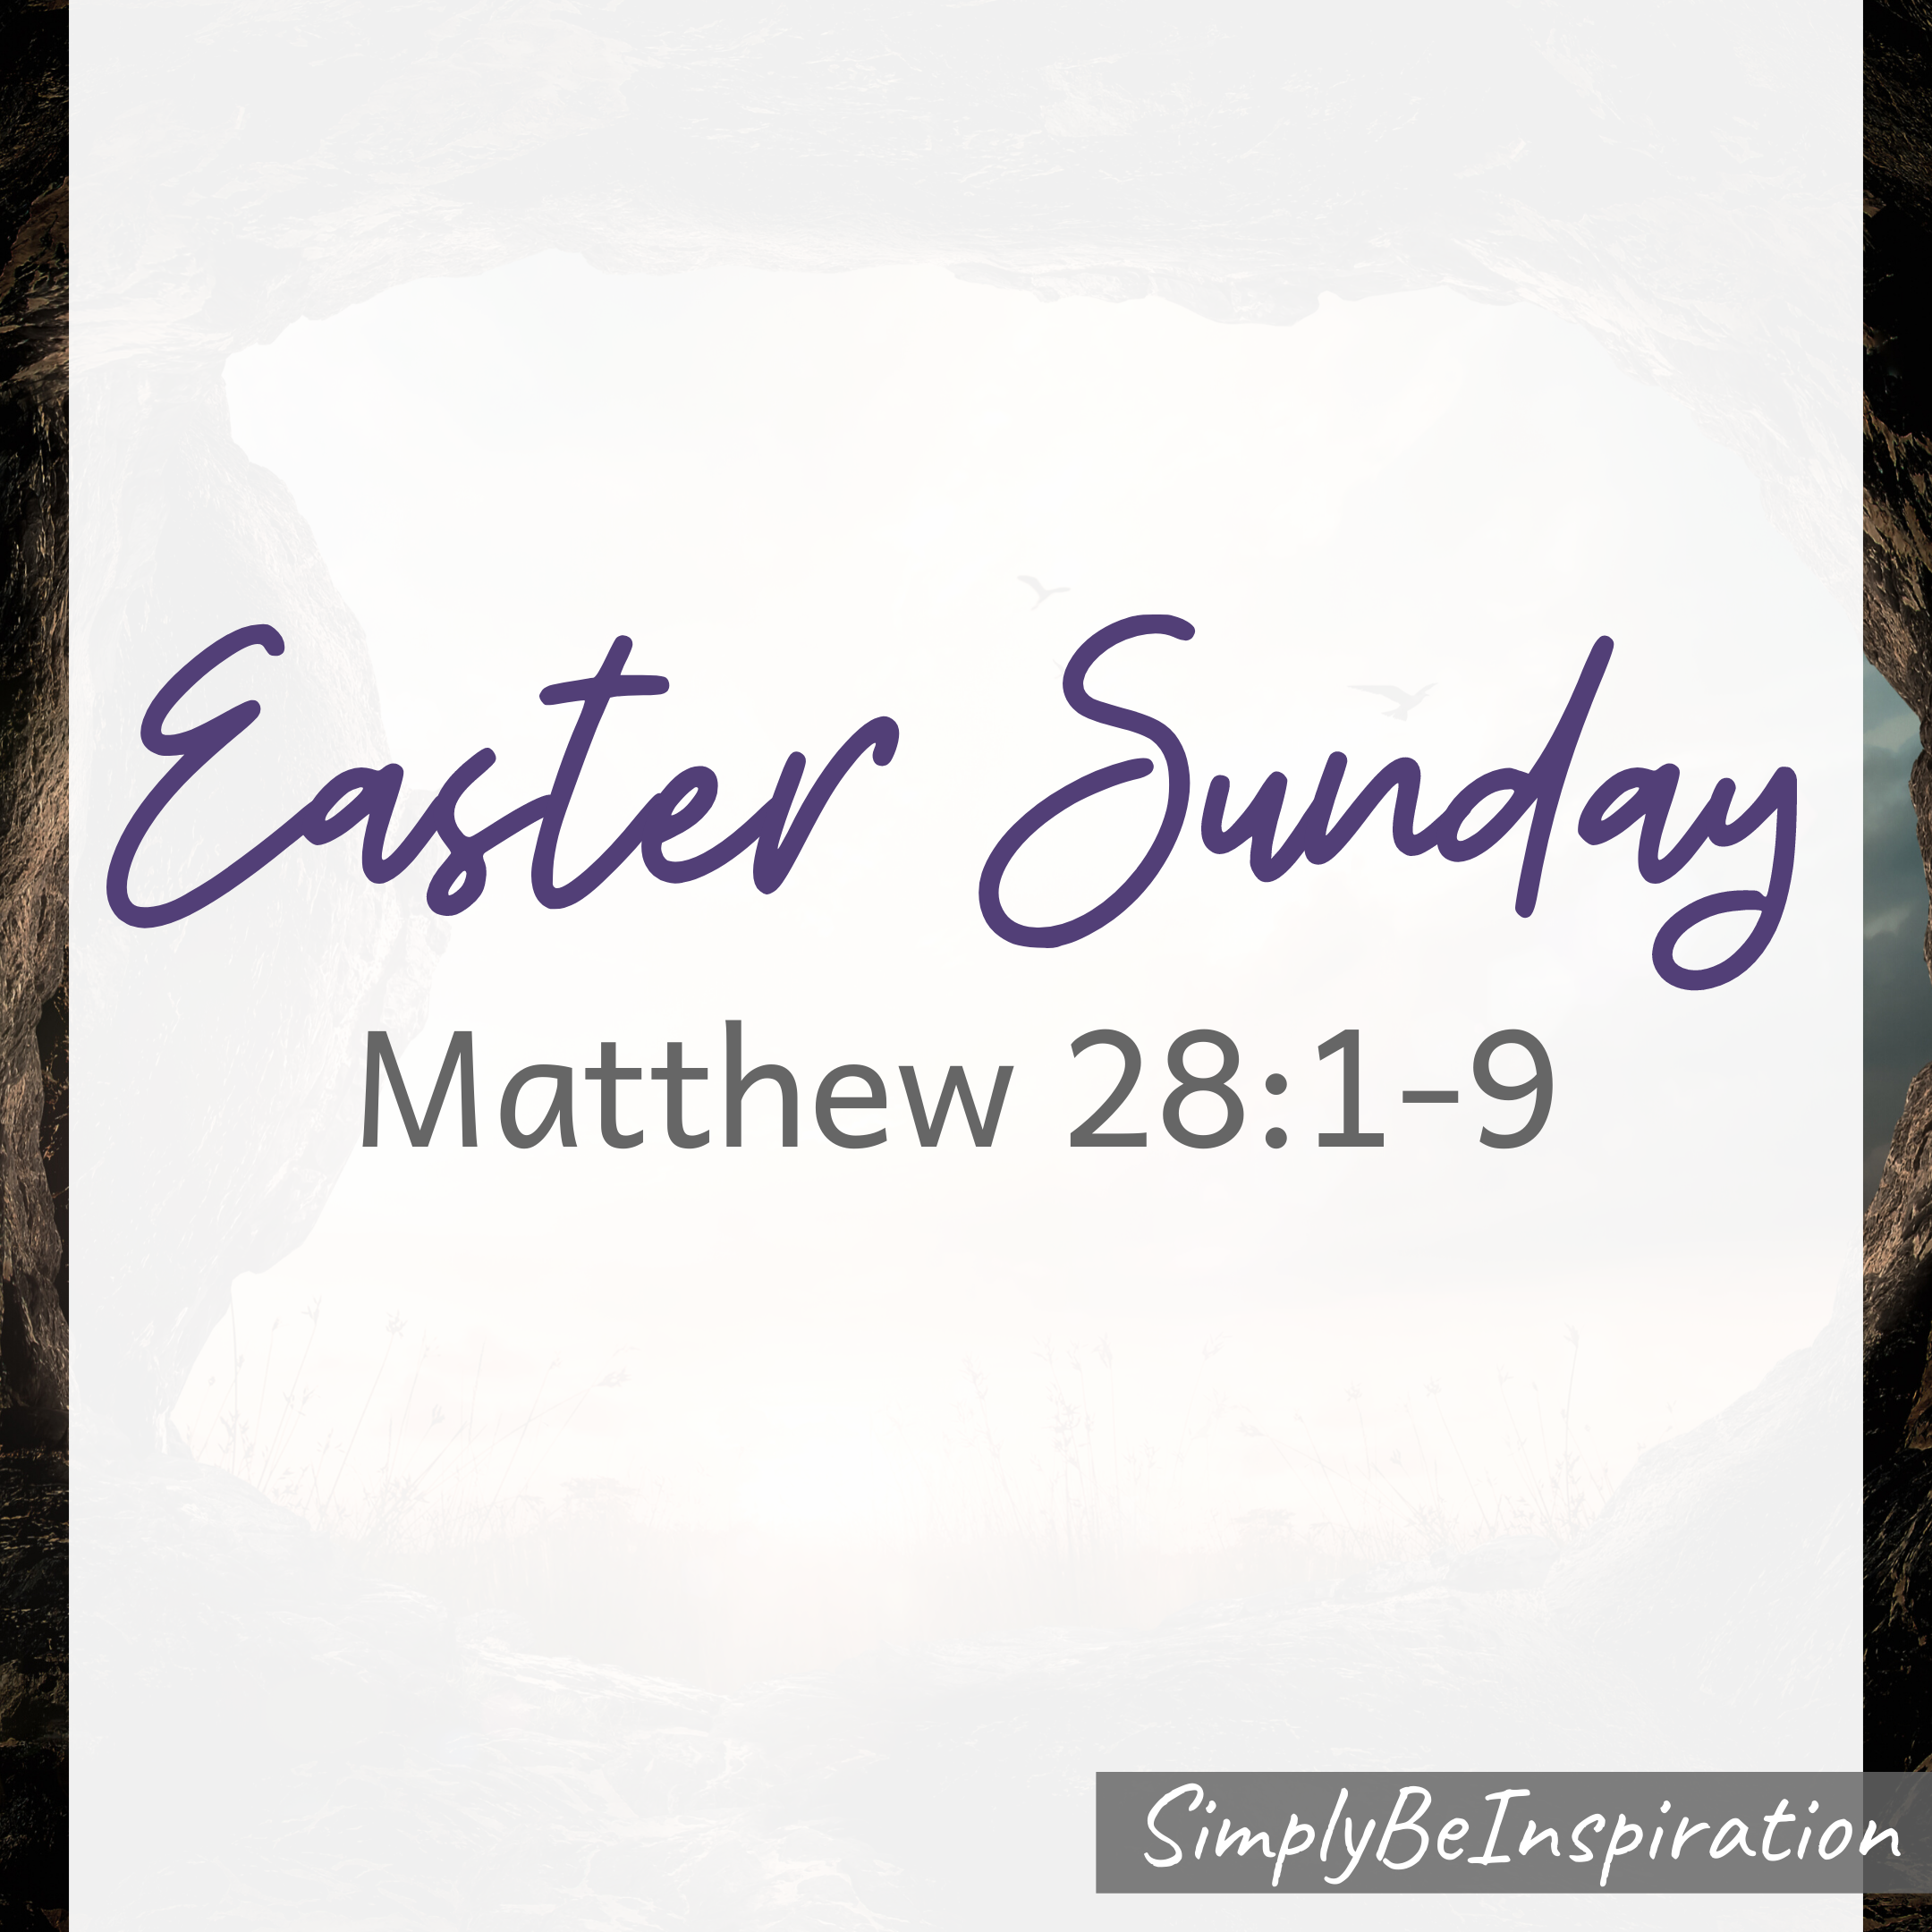 Easter Sunday Matthew 28:1-9